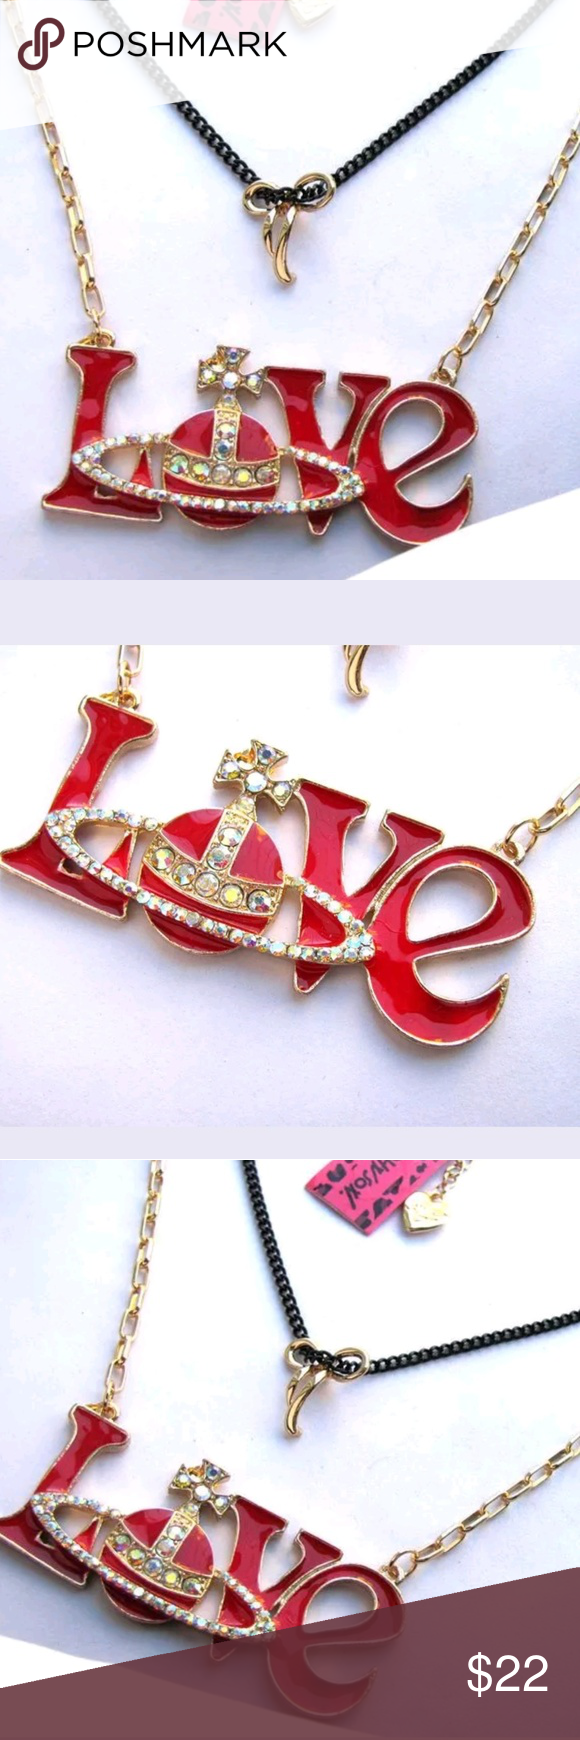 99cc3aedf Betsey Johnson Bright Crystal Red Enamel Love Pend Brand New with tags  chain length is about is 28 inches with a extender for additional 3  inches... Pendant ...